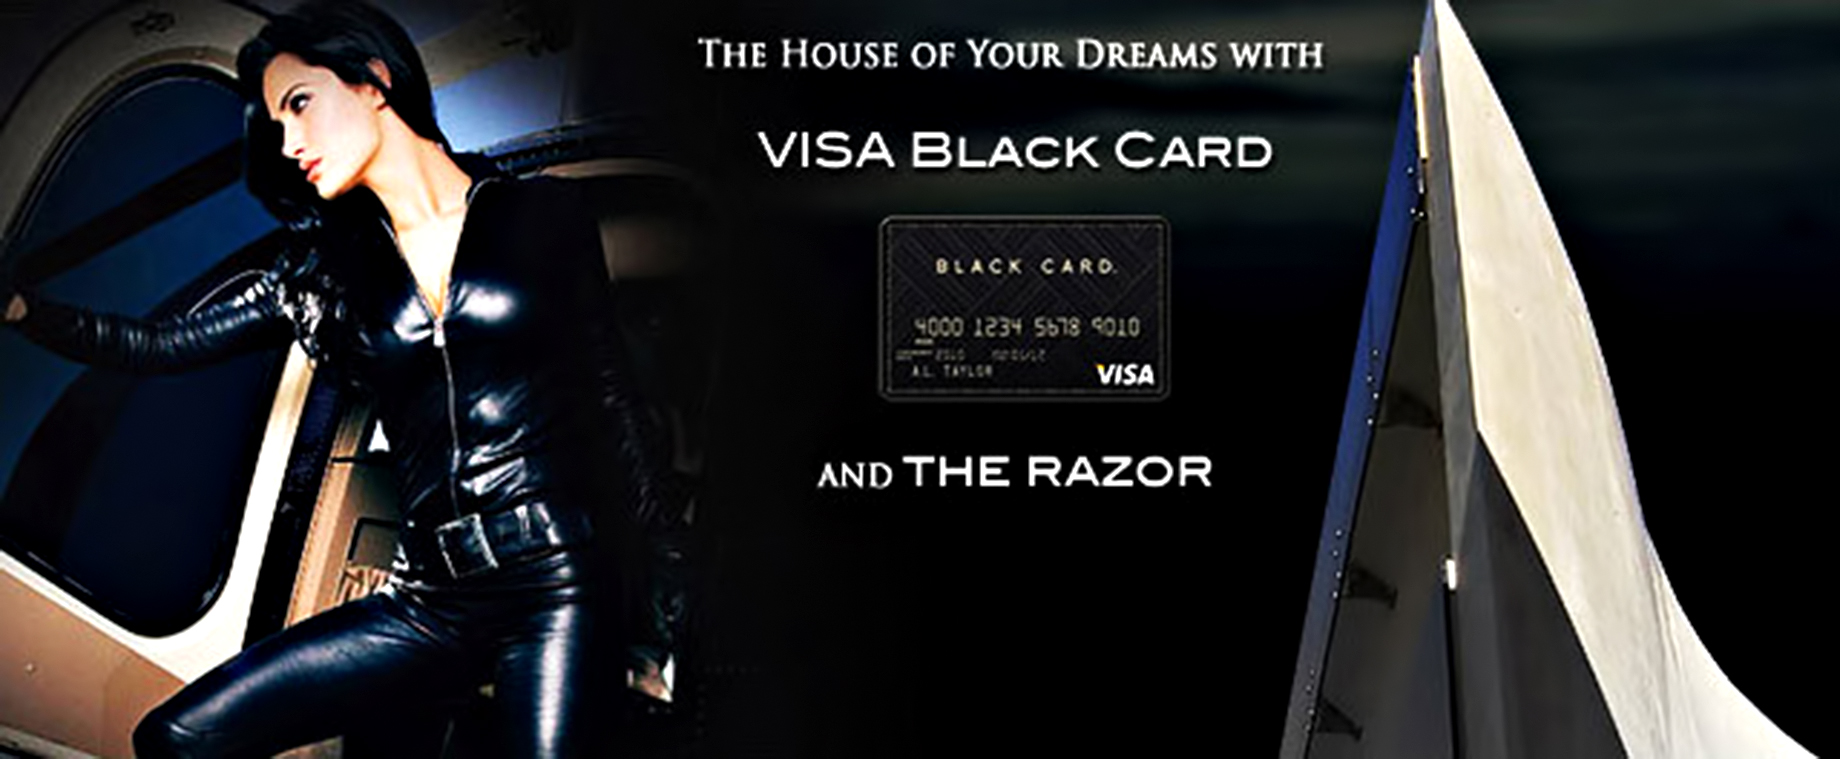 The House of Your Dreams with VISA Black Card and The Razor